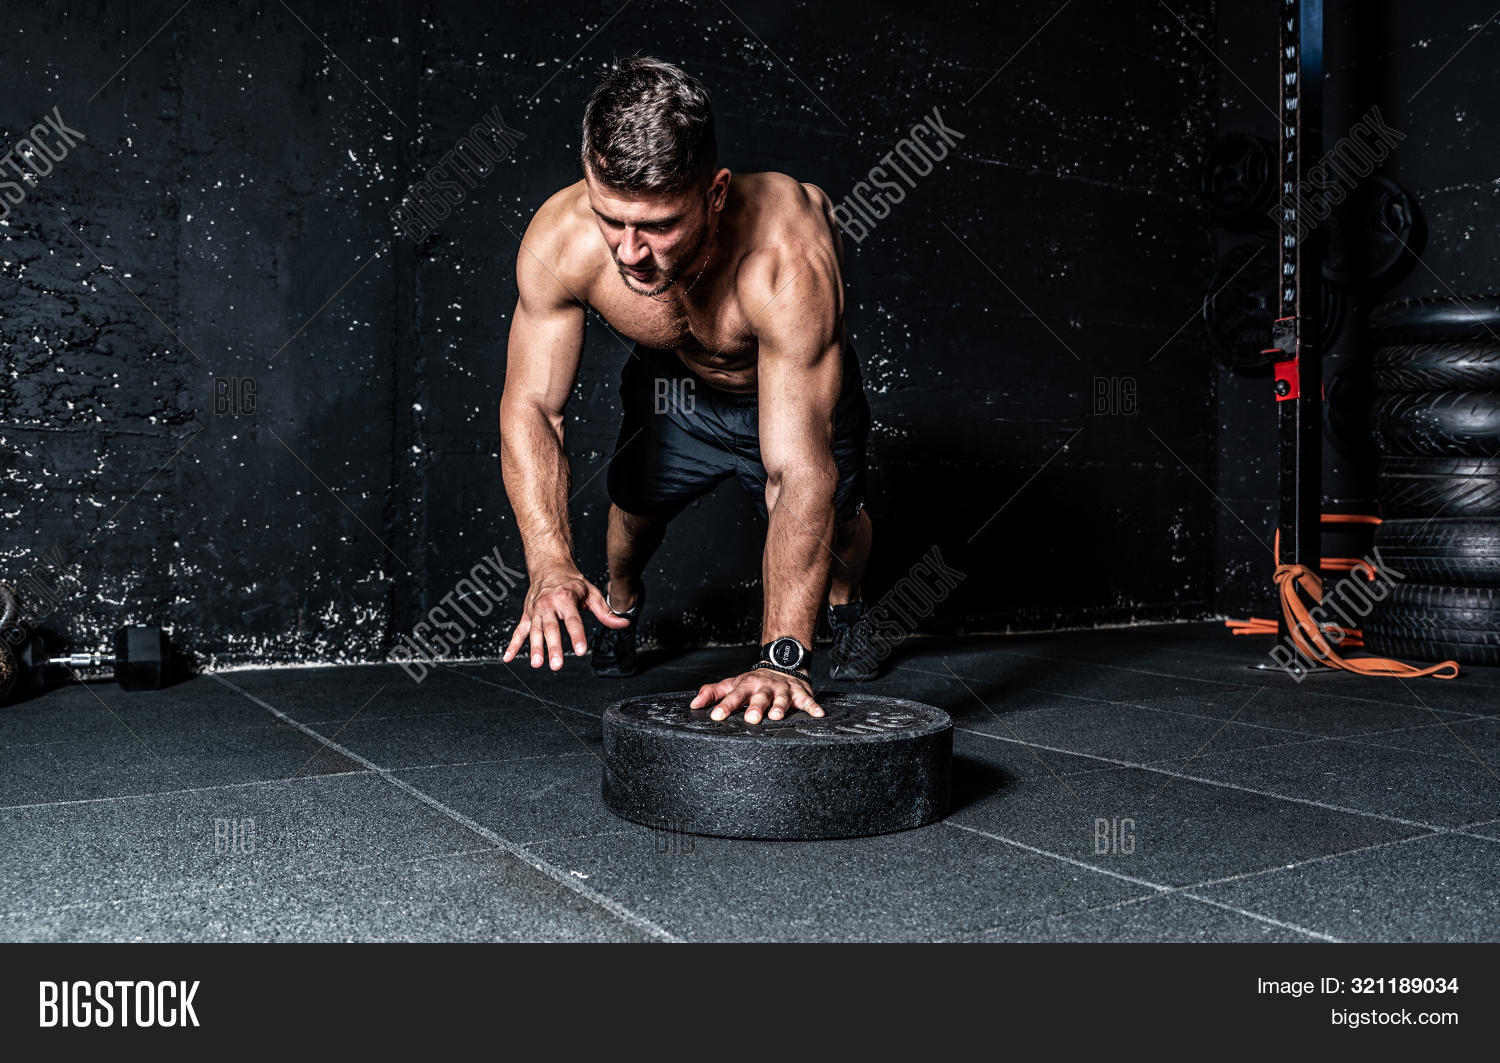 20s,active,athlete,athletic,attractive,barbell,biceps,body,bodybuilder,bodybuilding,chest,concentration,cross,determination,endurance,equipment,exercise,fit,fitness,focused,guy,gym,handsome,health,healthy,indoor,instructor,lifestyle,male,man,masculine,men,muscle,muscular,people,person,physical,power,pushing,pushup,sport,strength,strong,sweat,trainer,training,triceps,weight,workout,young